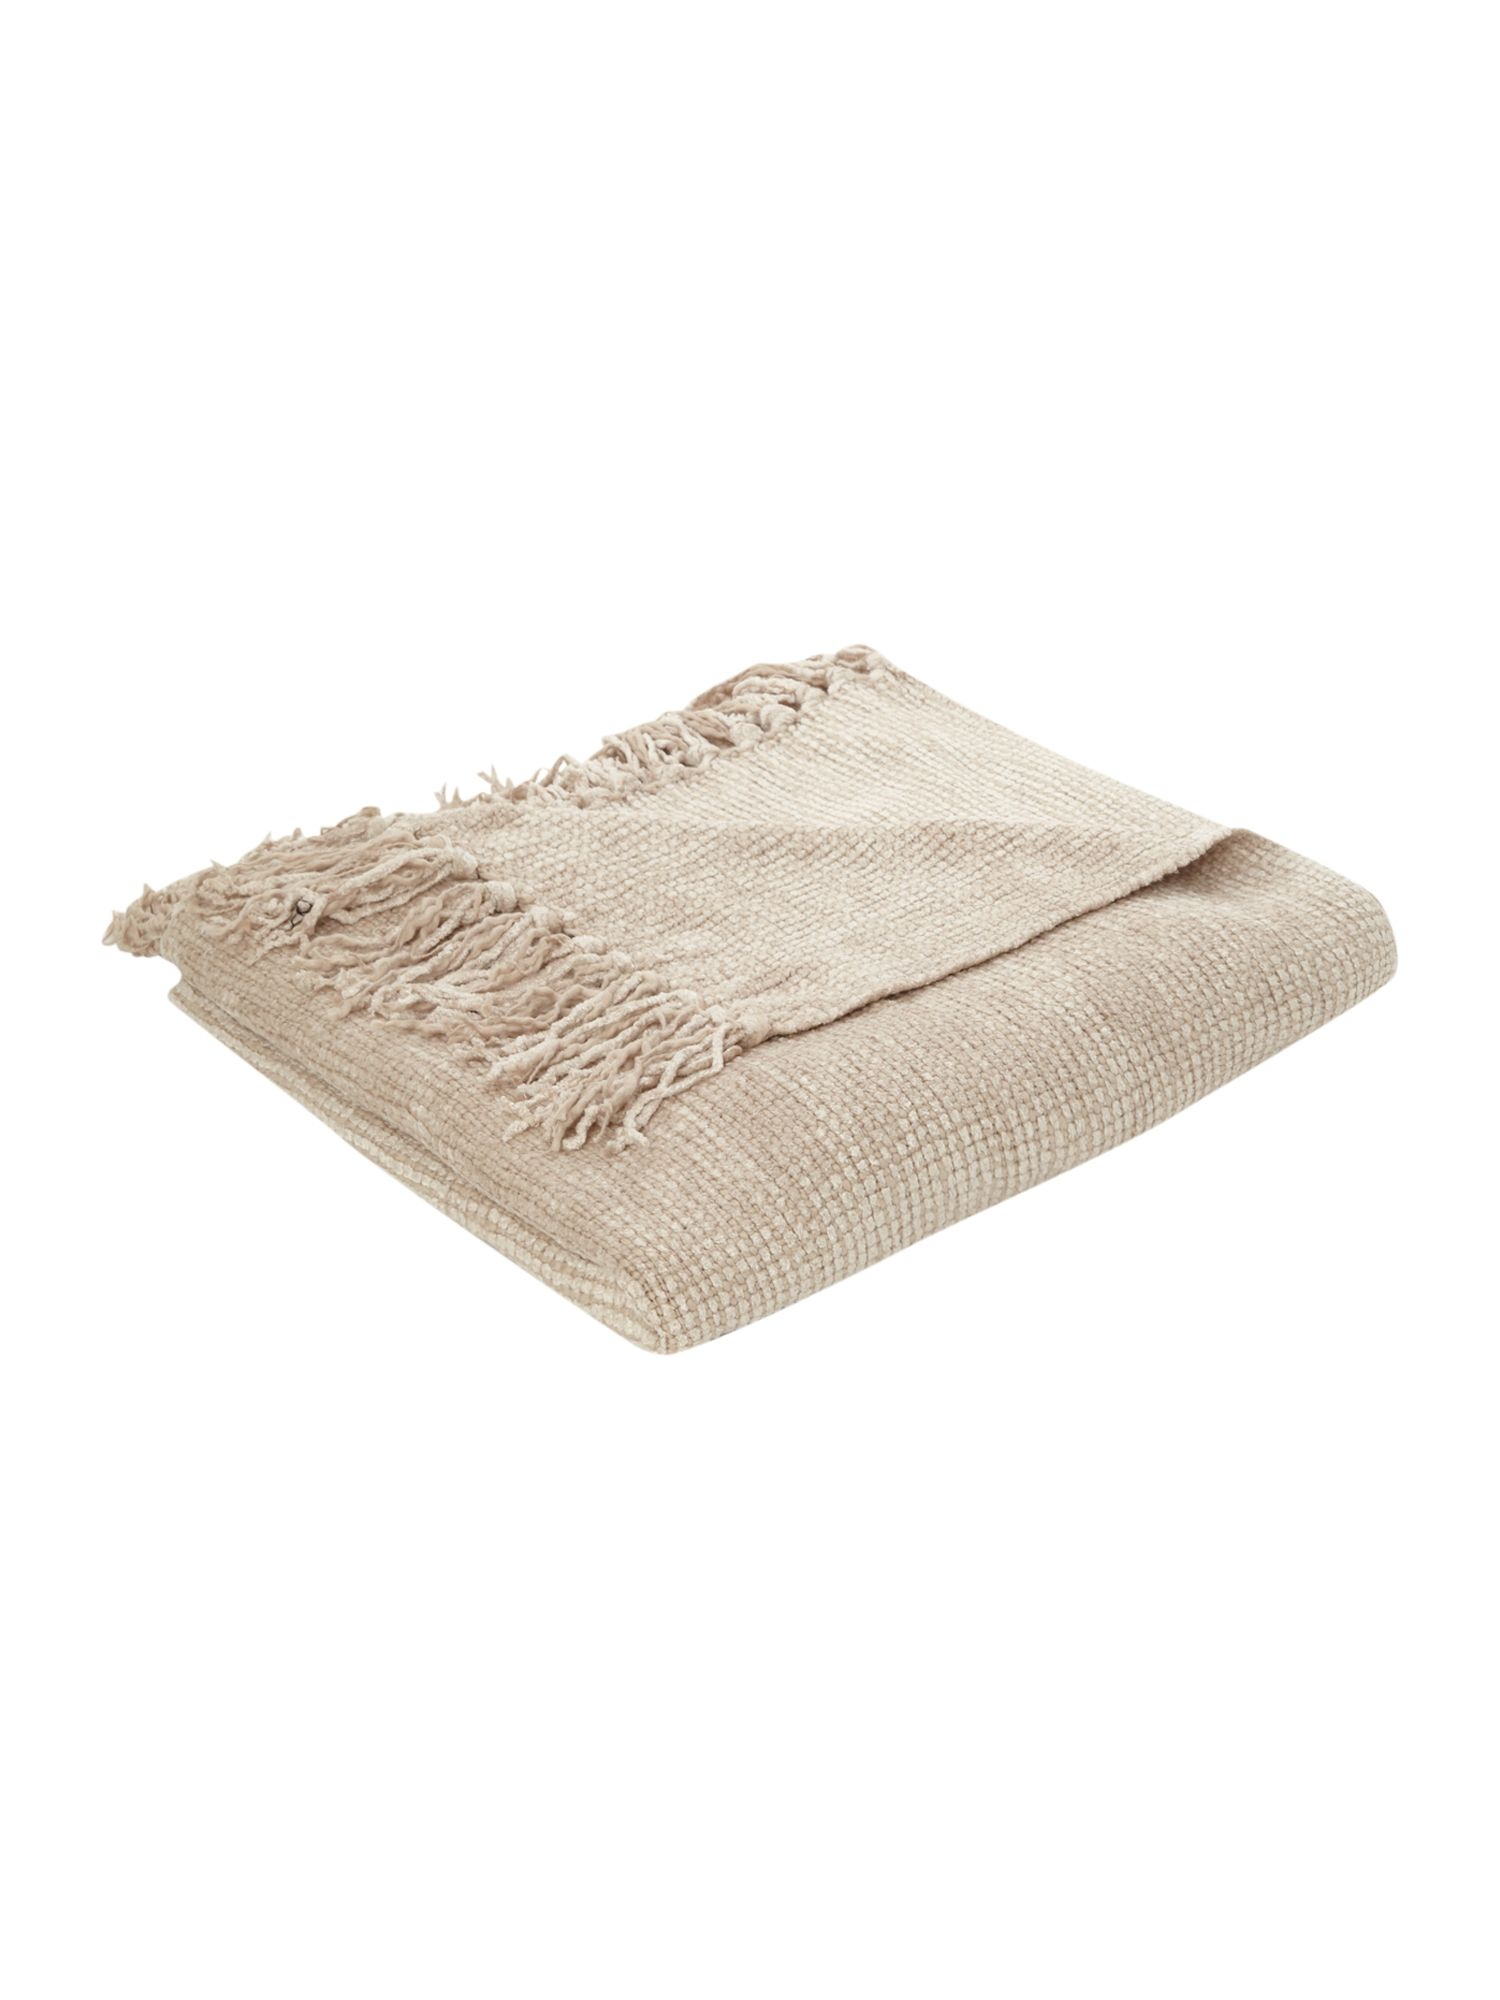 sofa throws uk only modern sets in kerala chenille for sofas home the honoroak